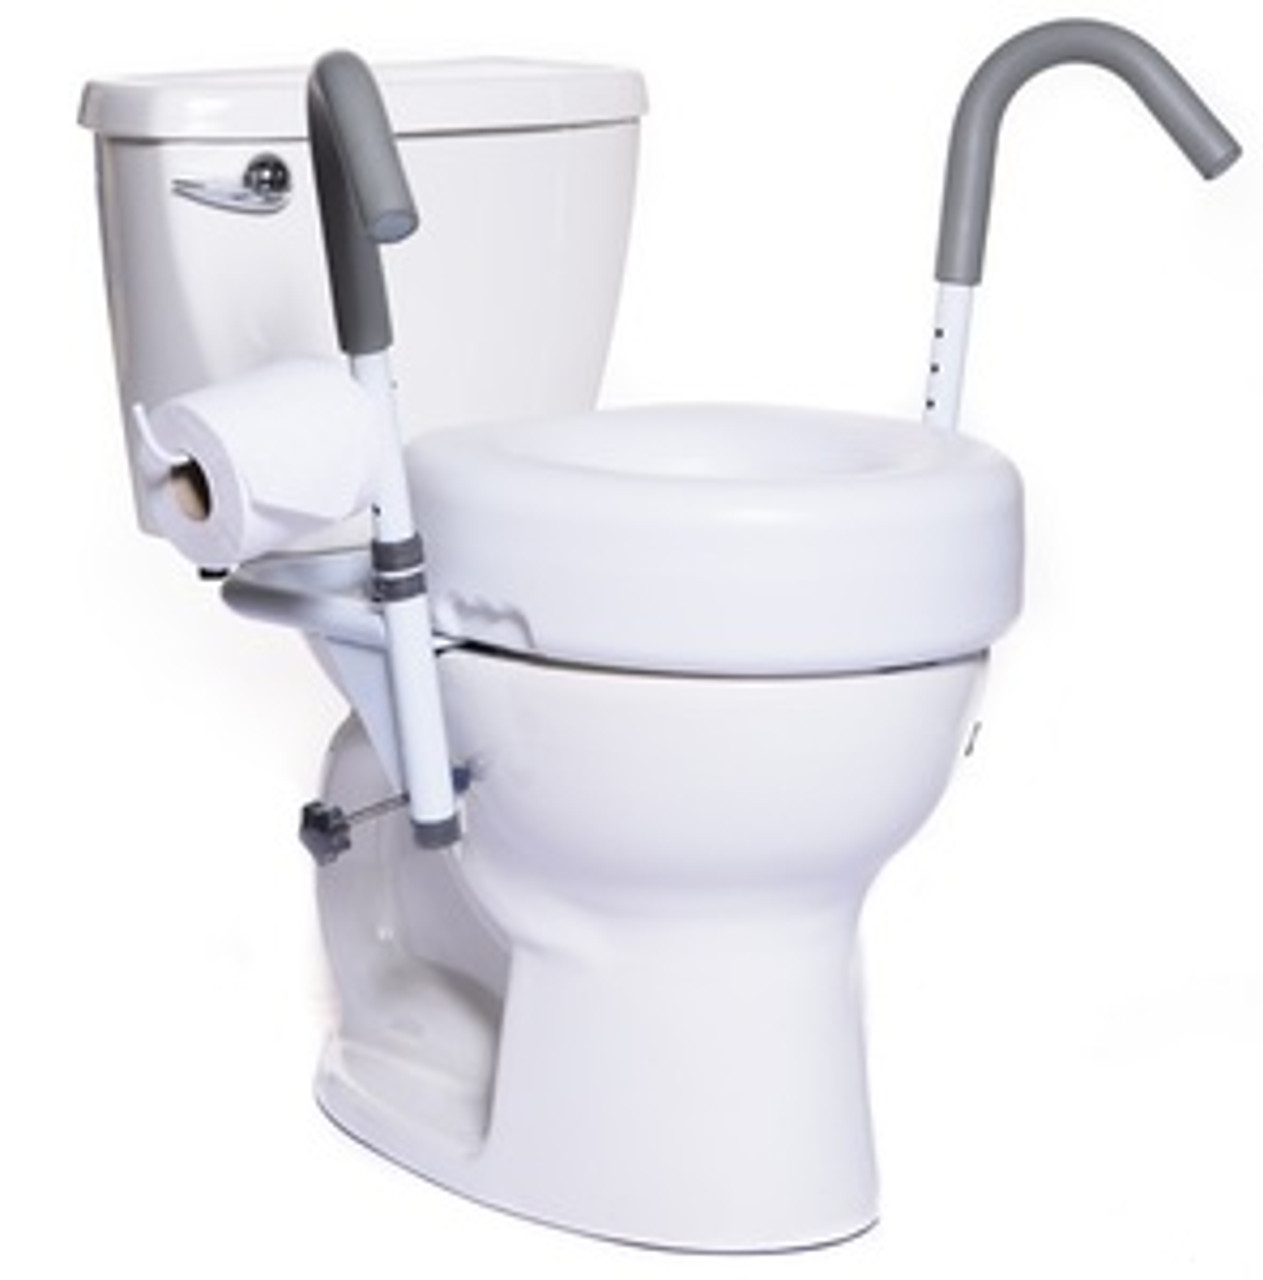 Incredible Mobb Ultimate Toilet Safety Frame Lamtechconsult Wood Chair Design Ideas Lamtechconsultcom